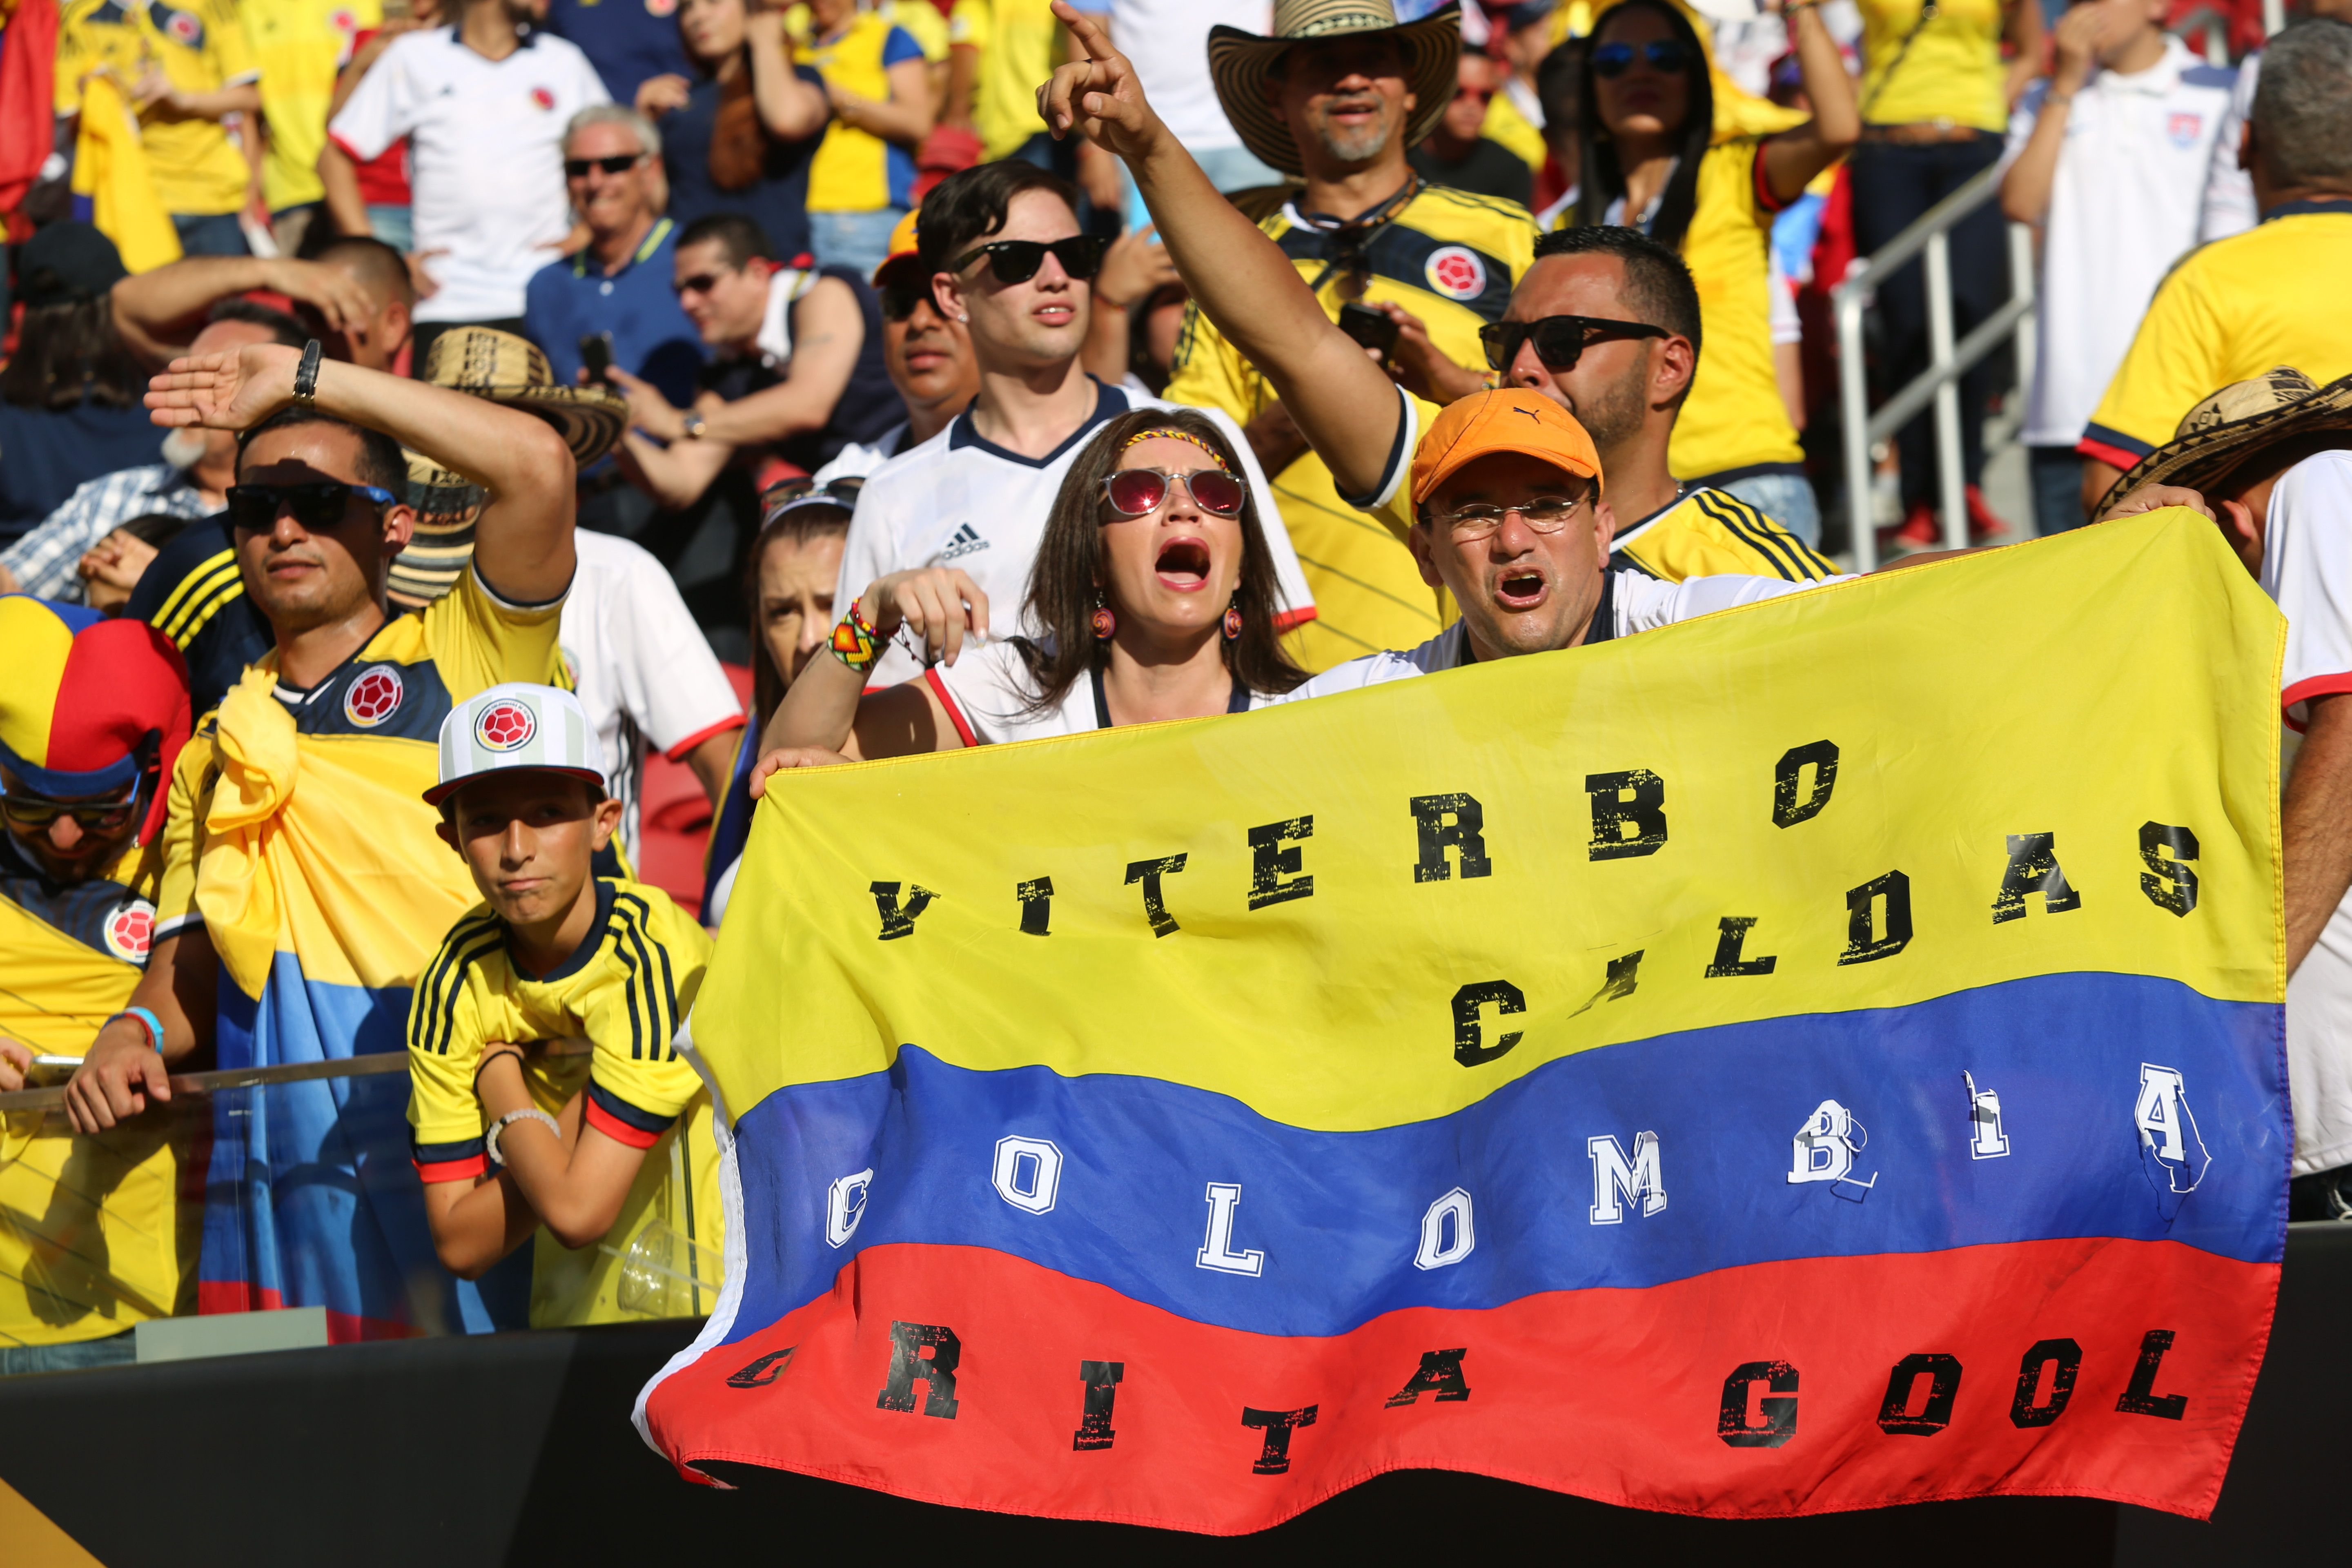 Pictures: Fans at Copa America match | Metro UK